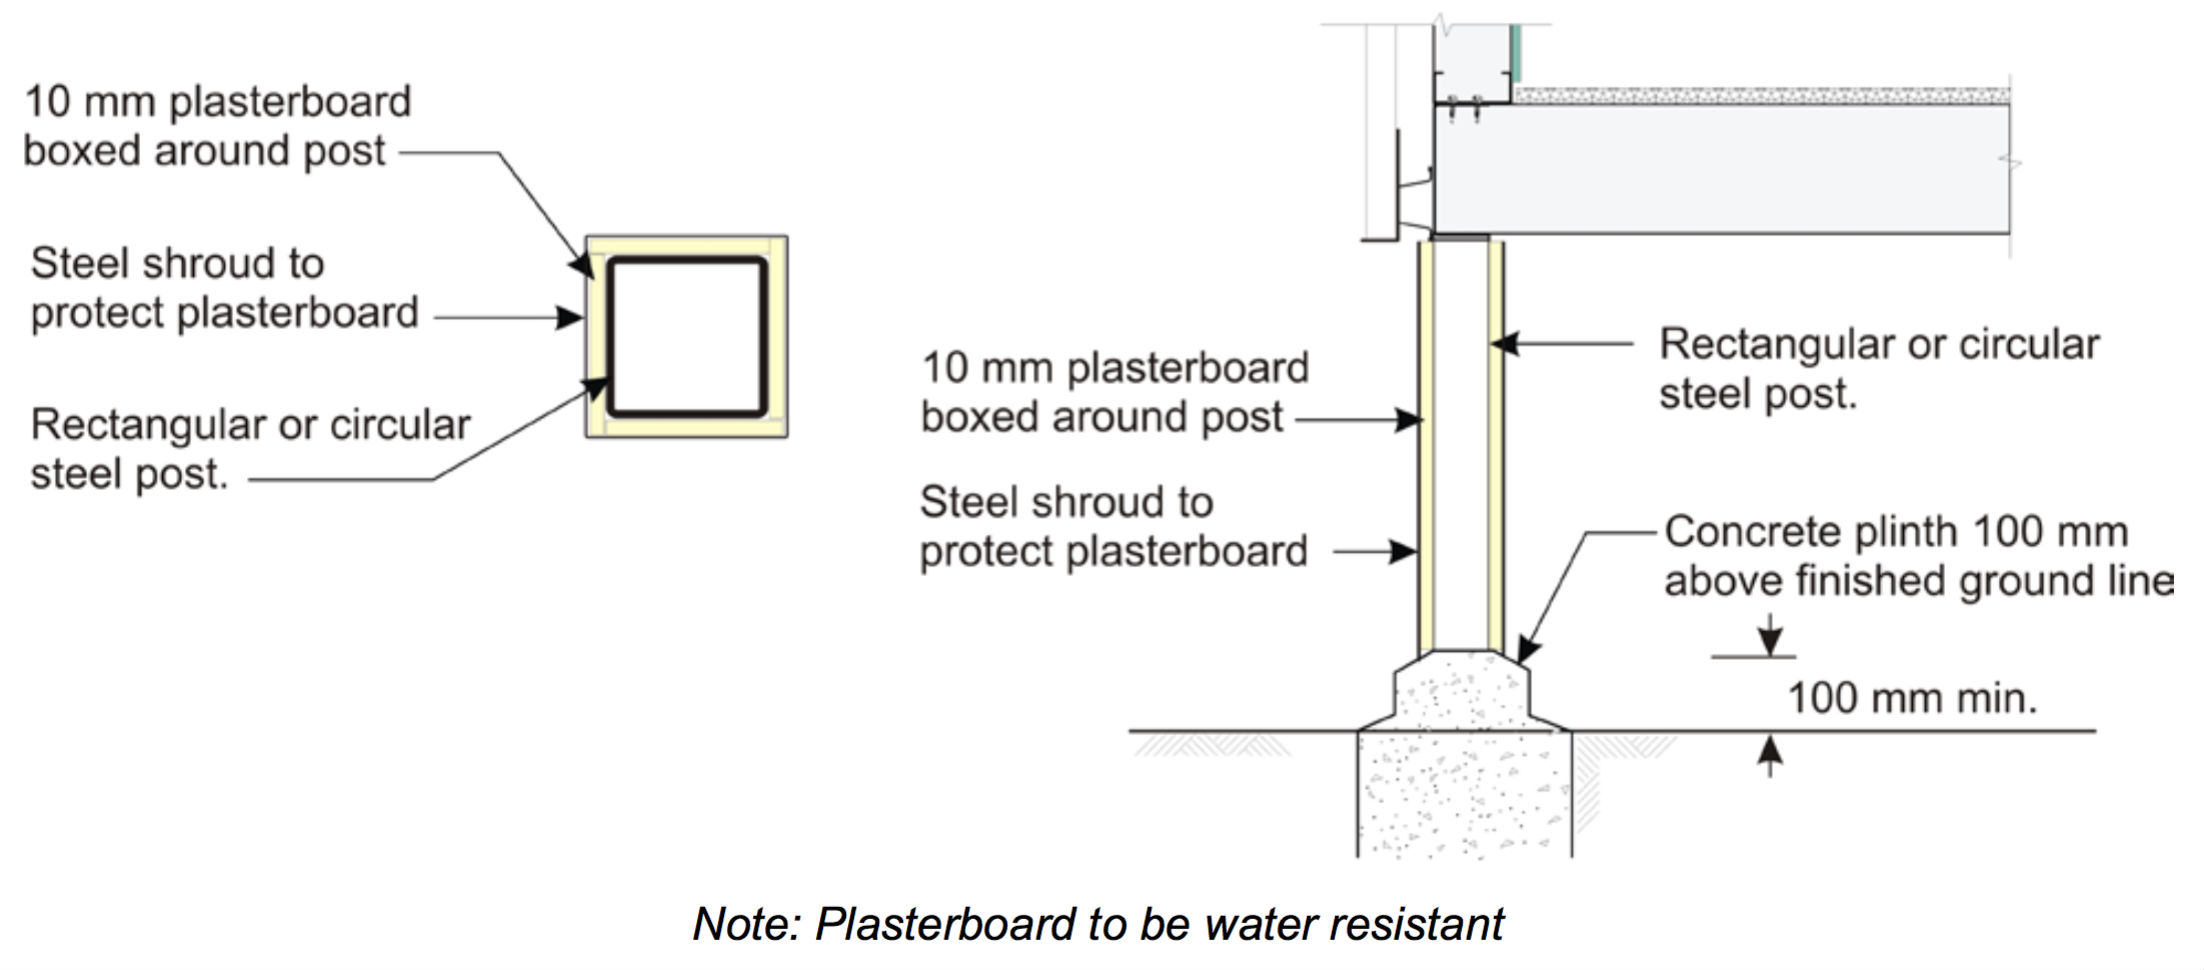 Section view of steel post enclosed in plasterboard for steelframes bearers and joists